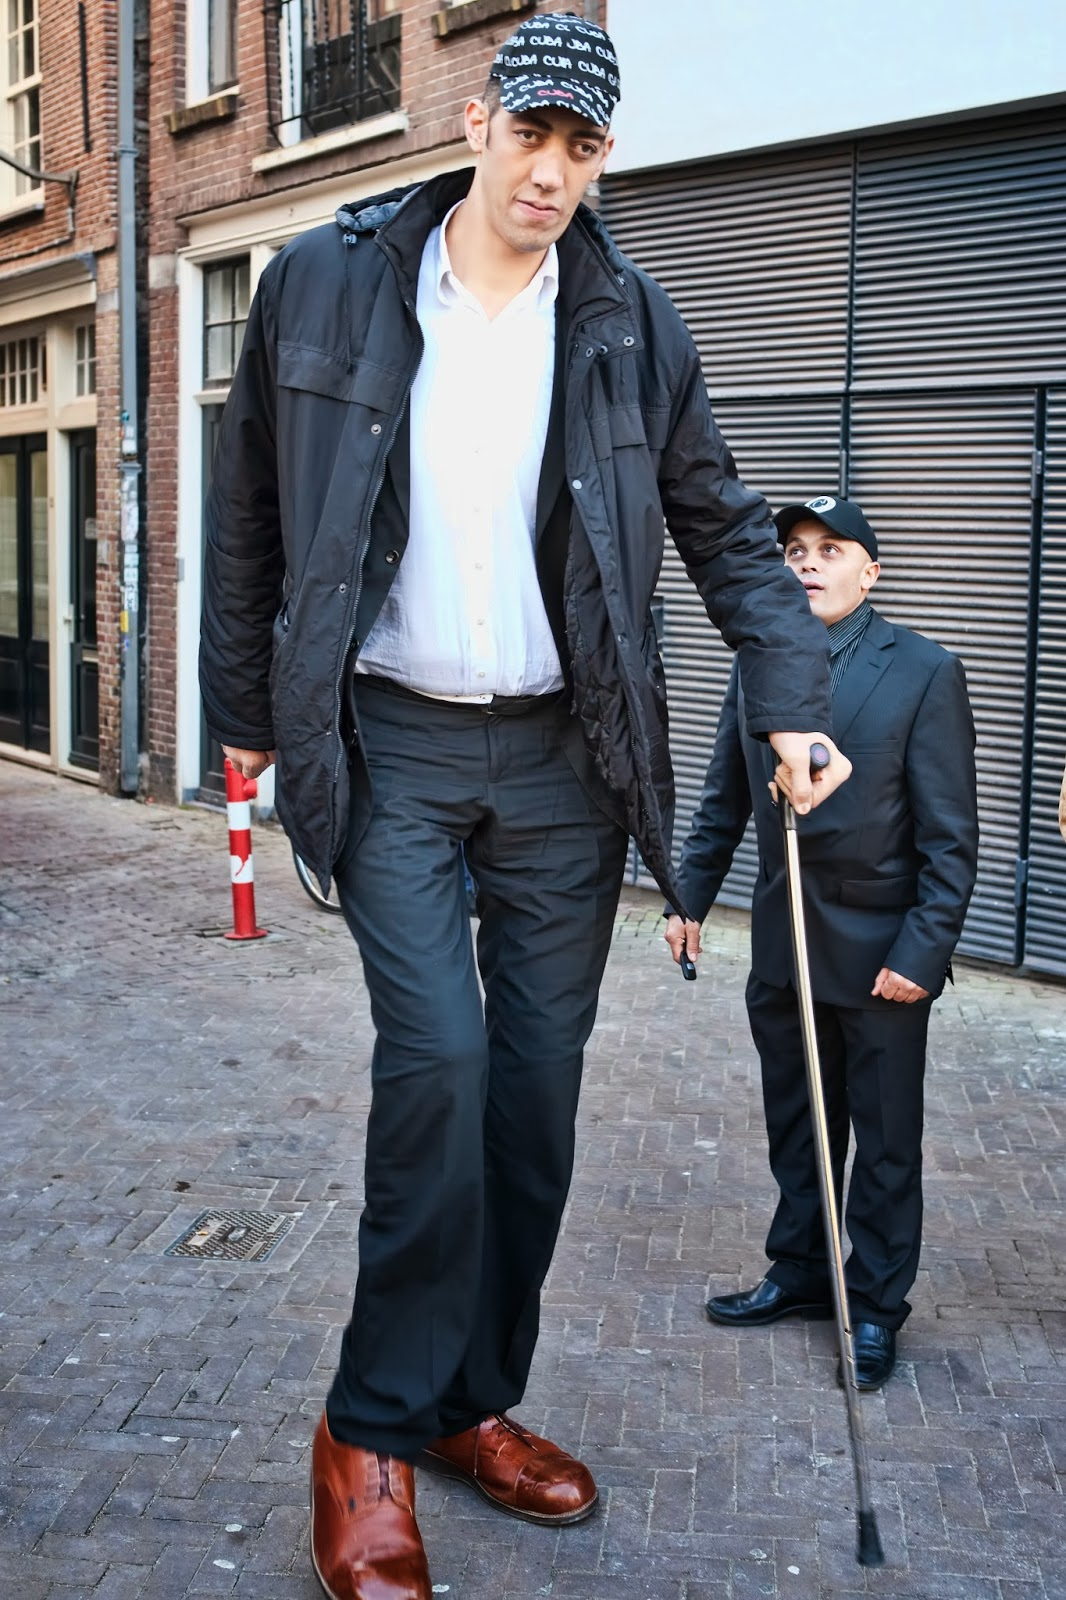 Did you know?: Tallest People Ever